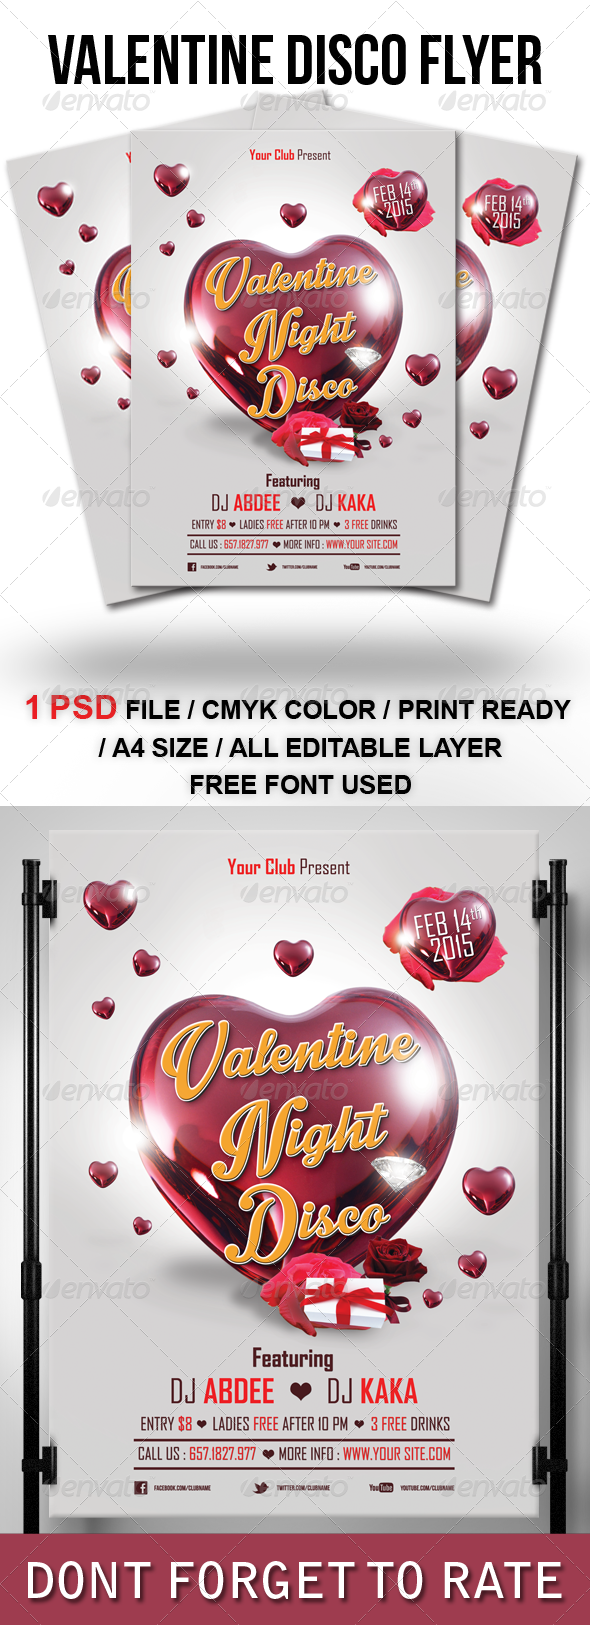 Valentine Night Disco Flyer Template - Clubs & Parties Events